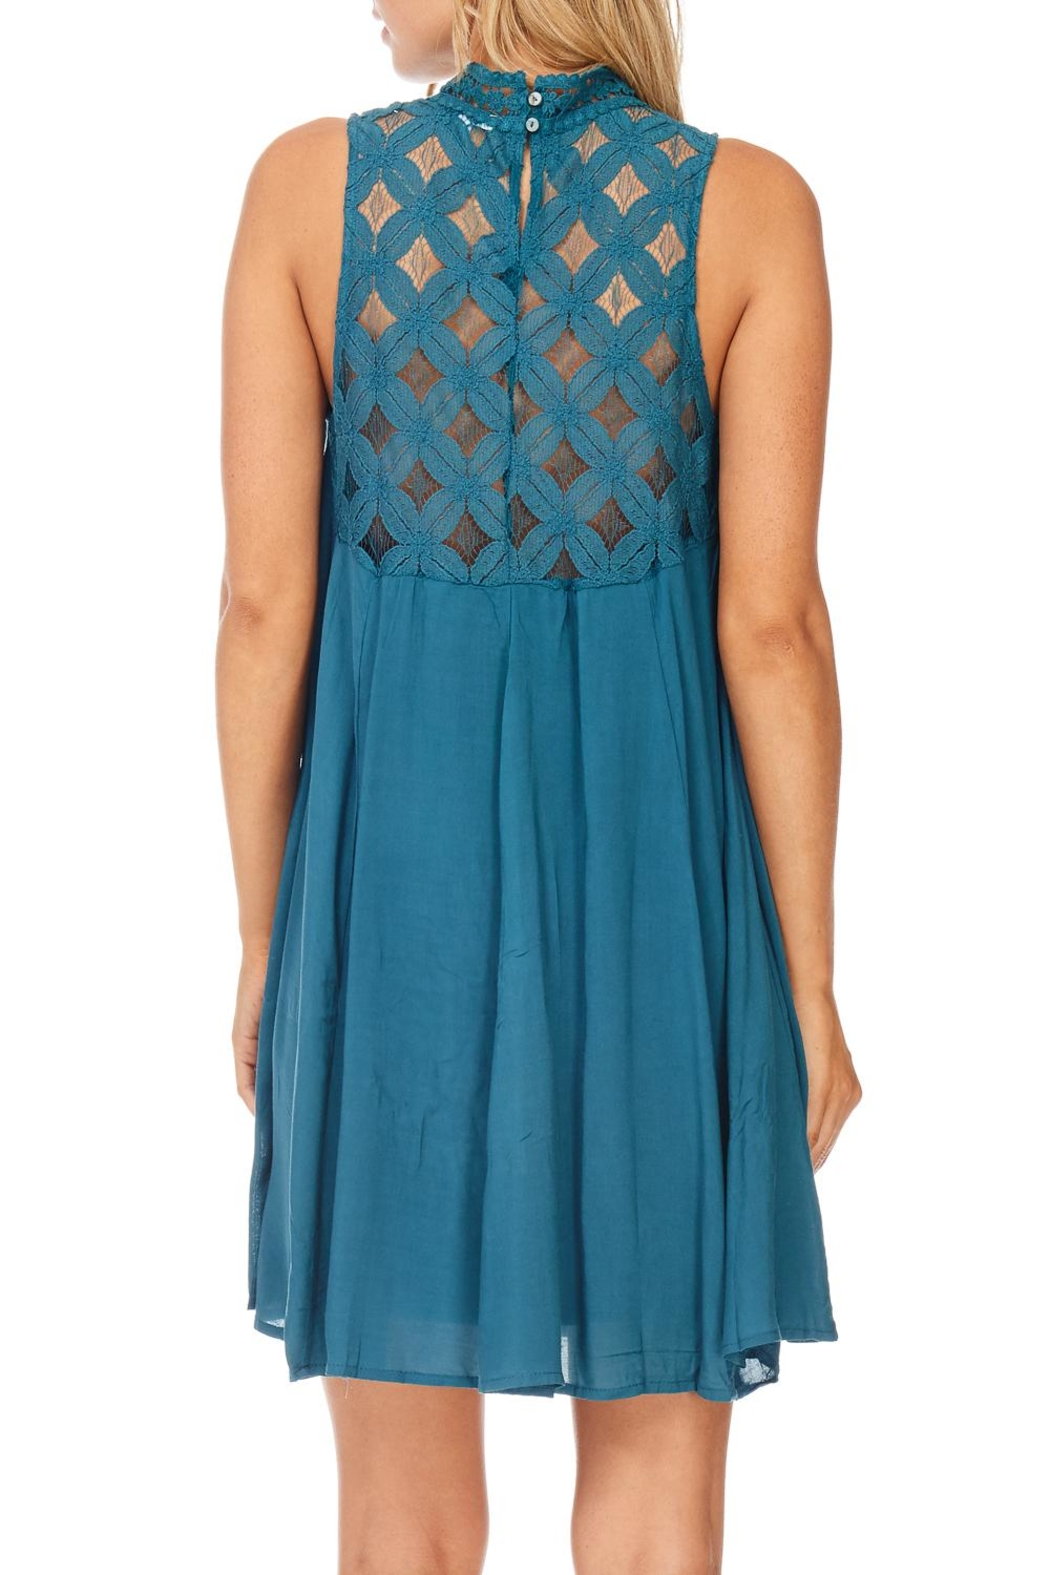 She + Sky Teal Lace Dress - Back Cropped Image